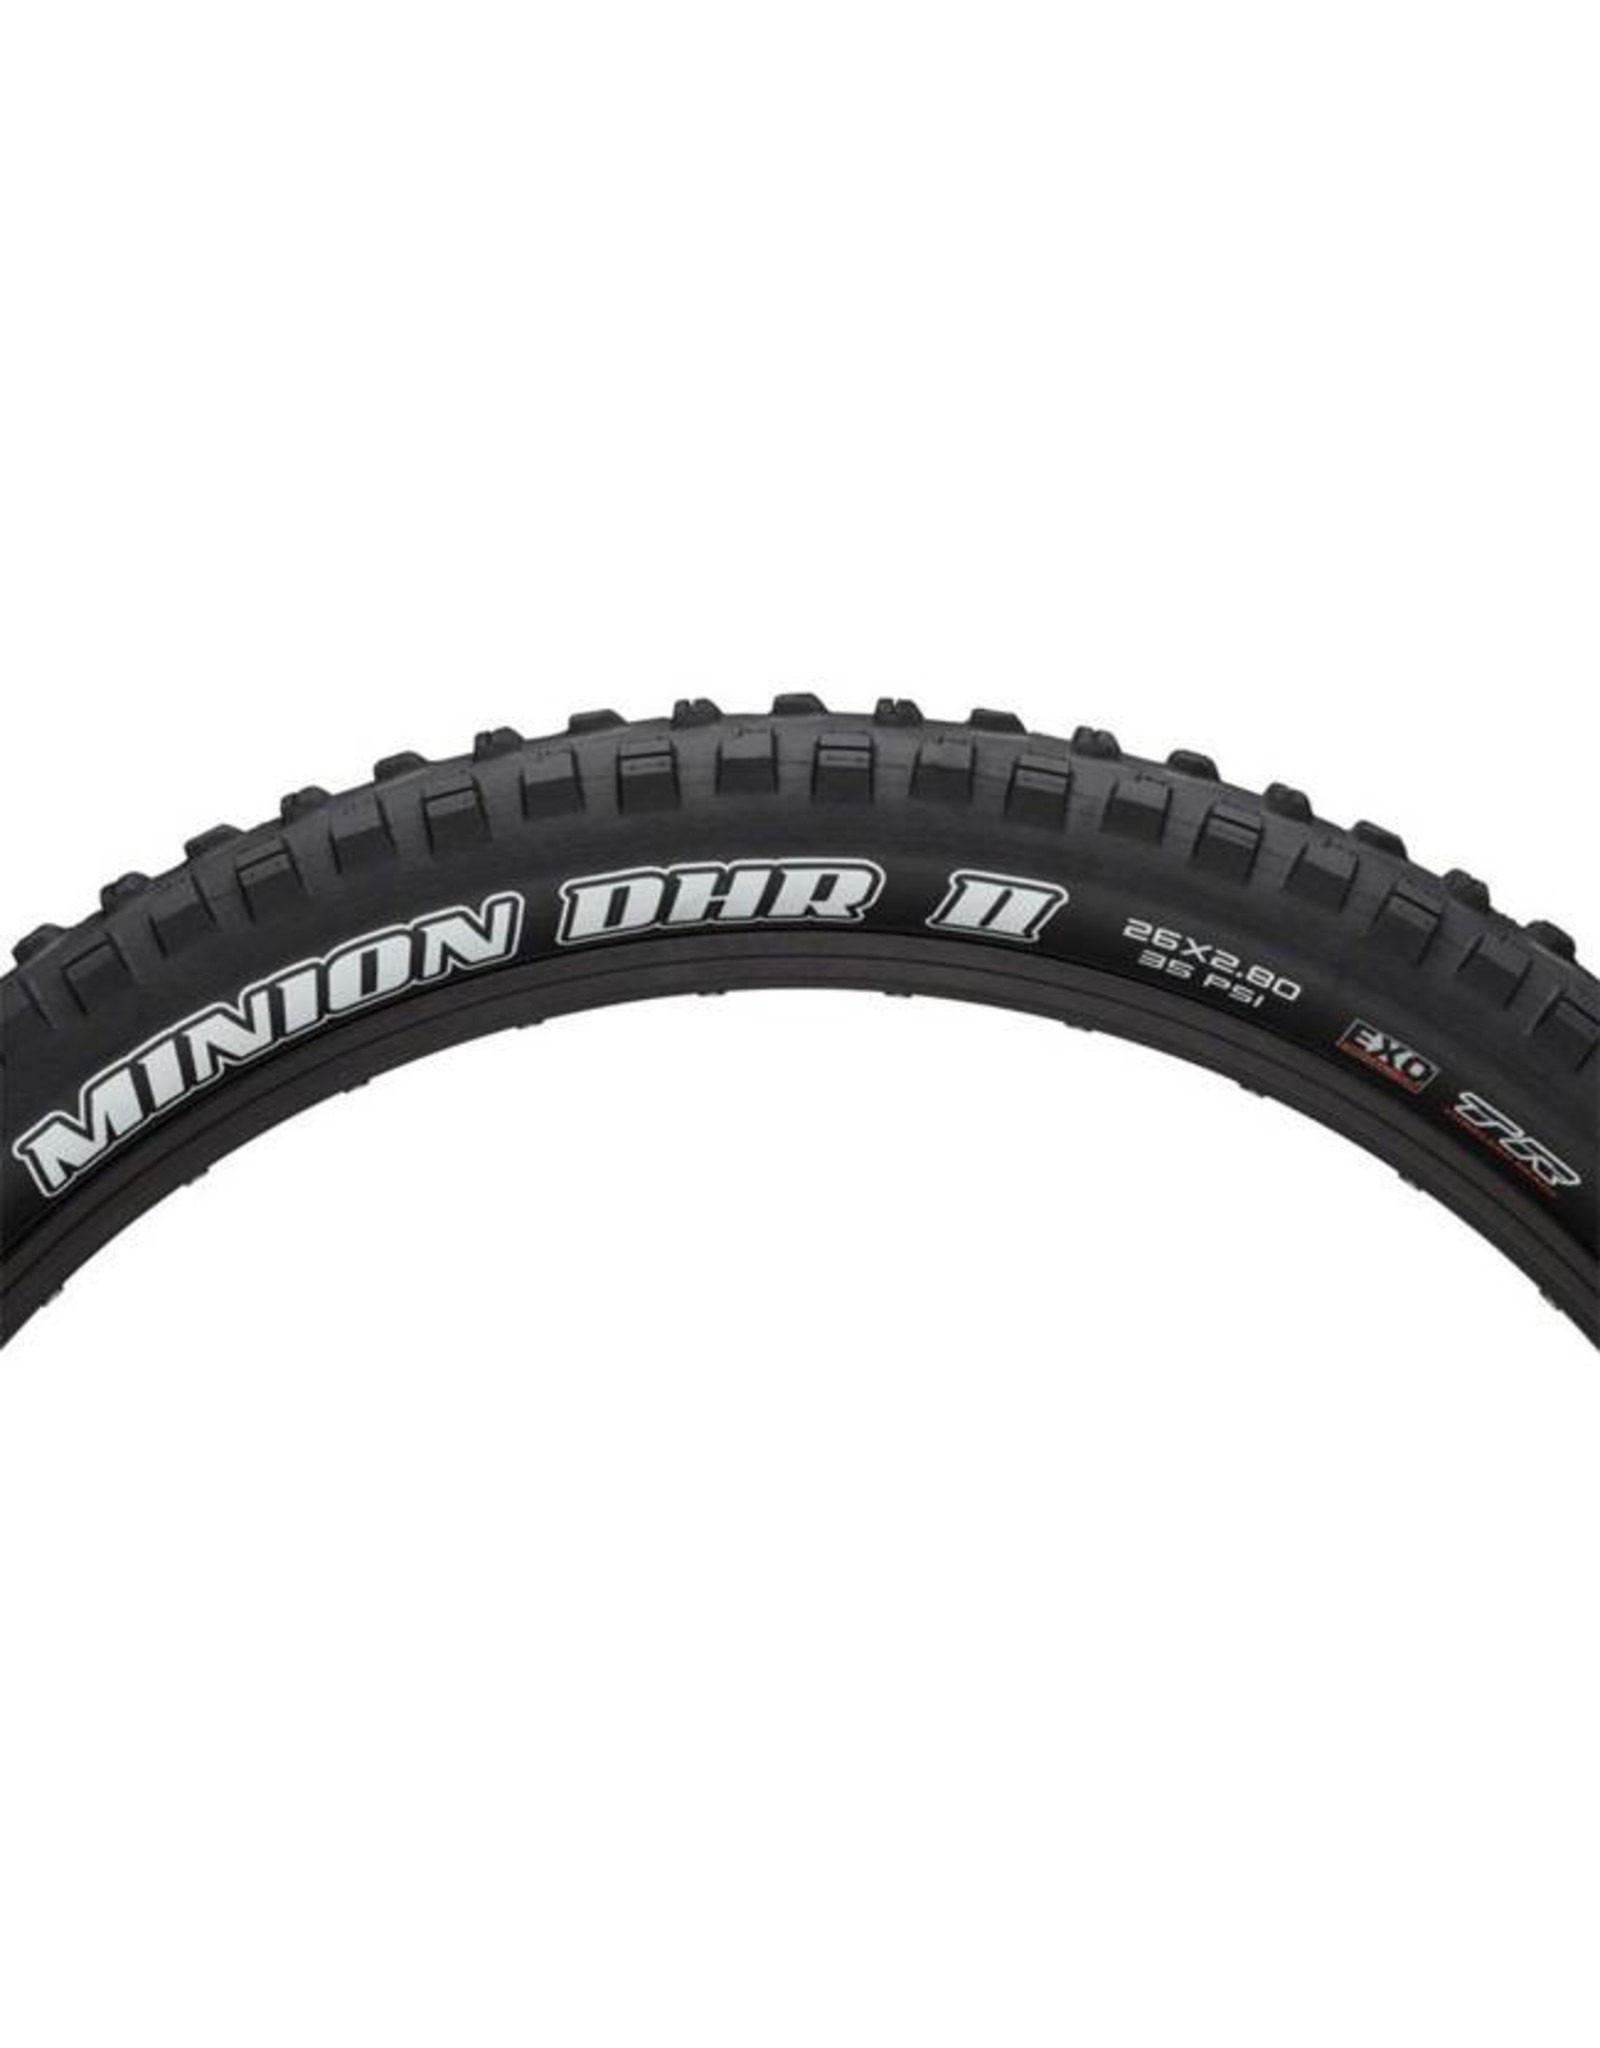 "Maxxis Maxxis Minion DHR II Tire: 26 x 2.80"", Folding, 60tpi, Dual Compound, EXO, Tubeless Ready, Black"